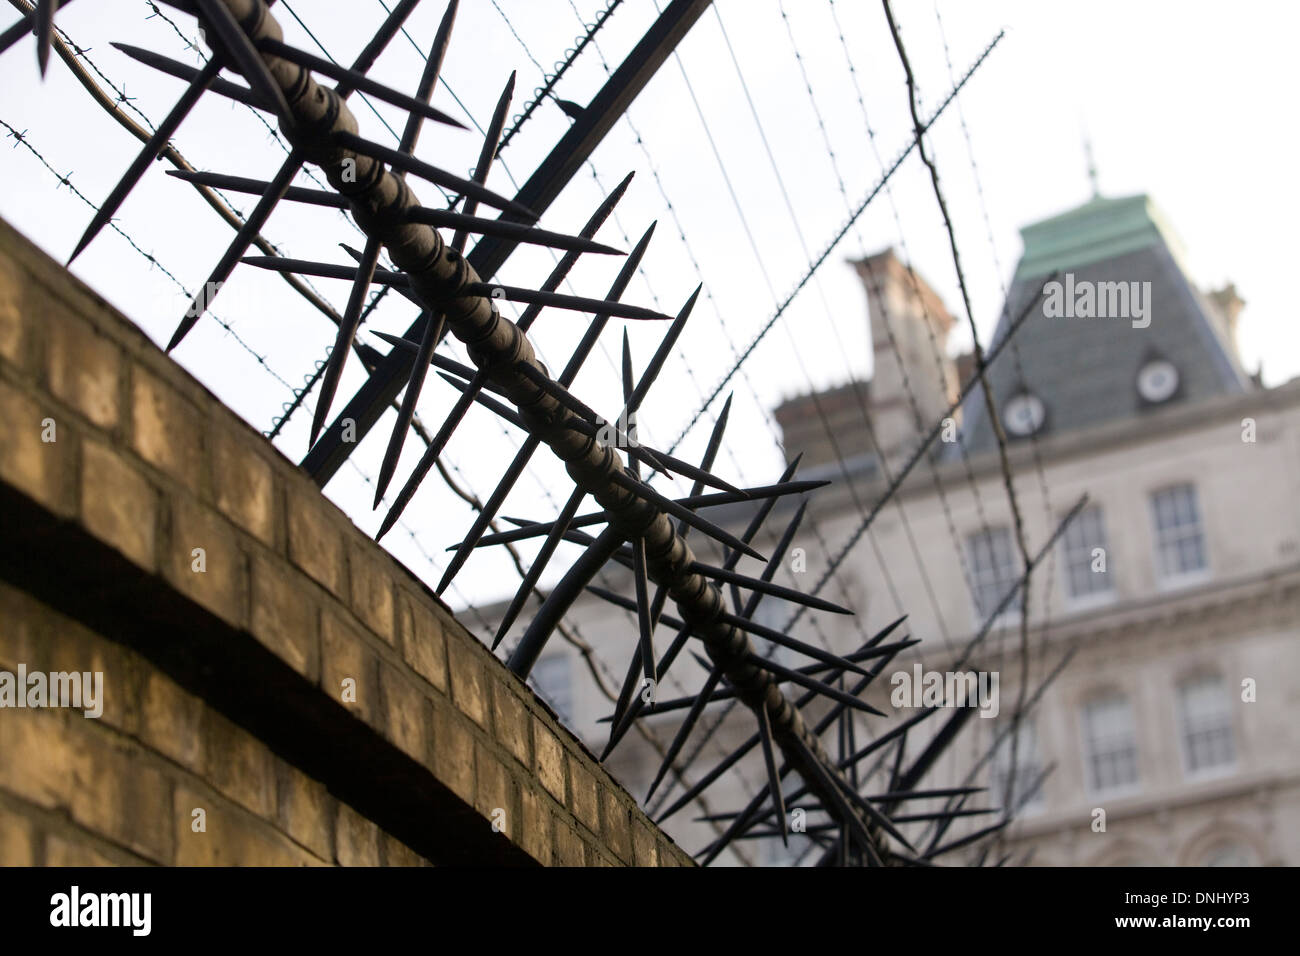 Metal Fence Spikes Wire Stock Photos & Metal Fence Spikes Wire Stock ...